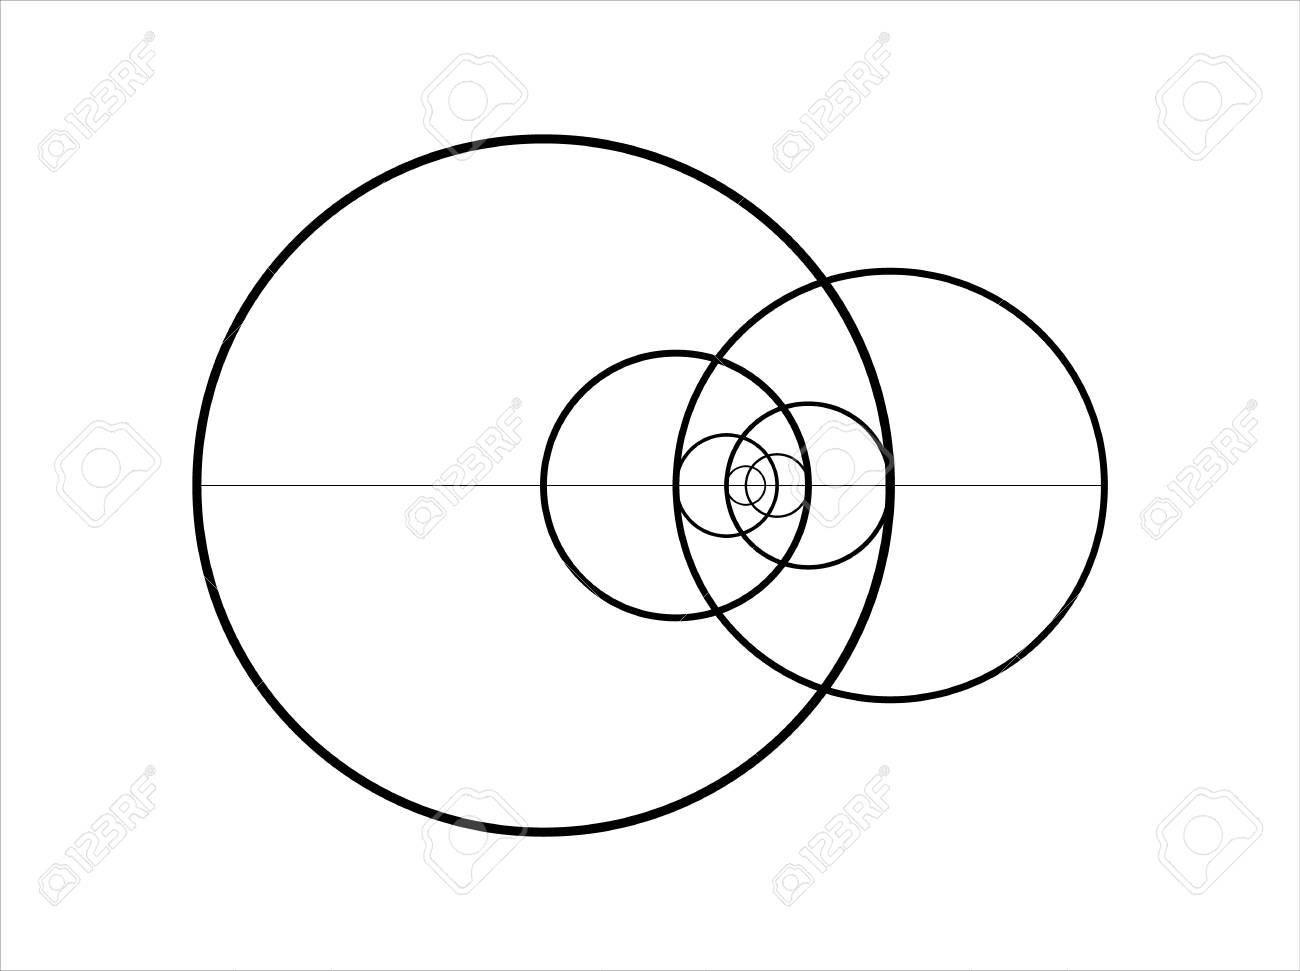 minimalistic style design golden ratio geometric shapes circles rh 123rf com golden ratio vector illustrator golden ratio vector illustrator